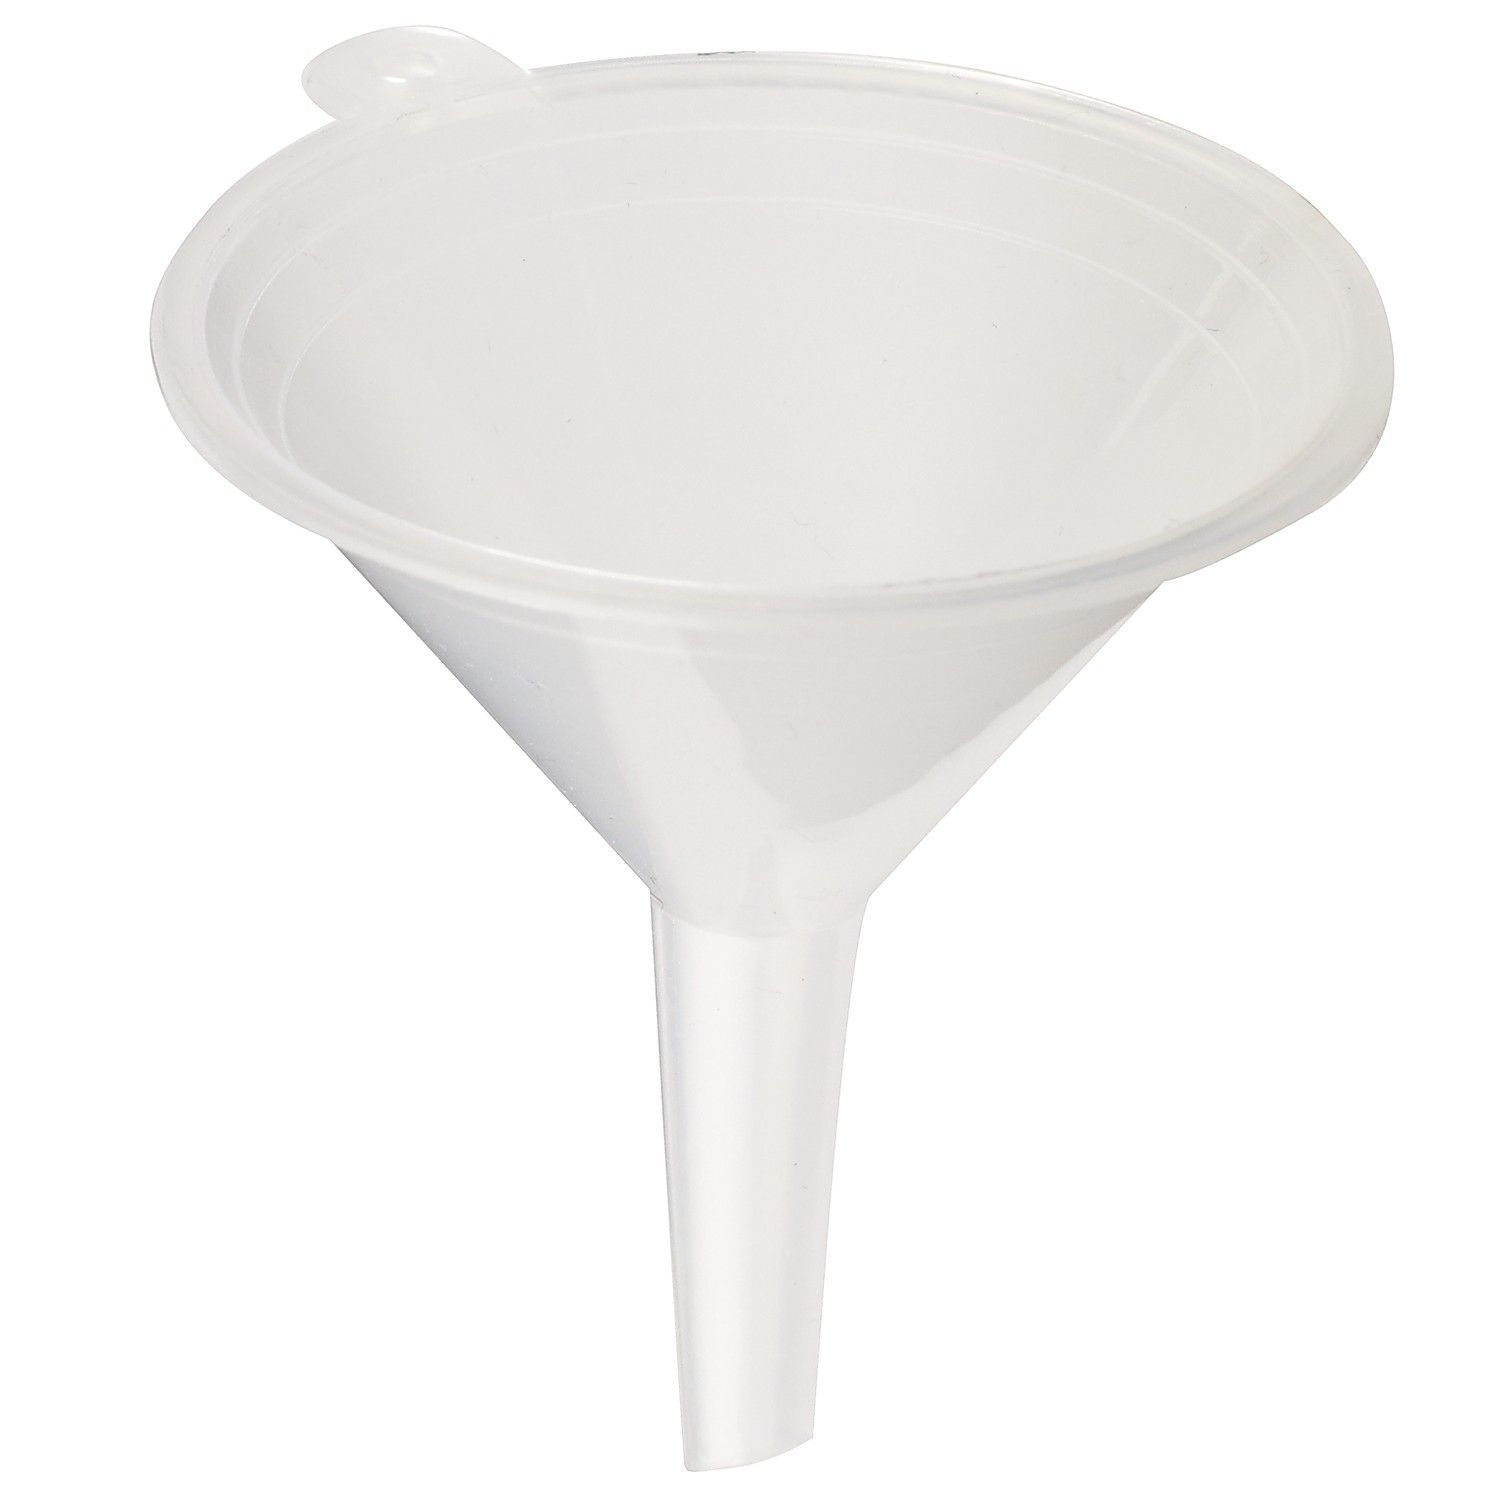 Funnel - 32 oz plastic